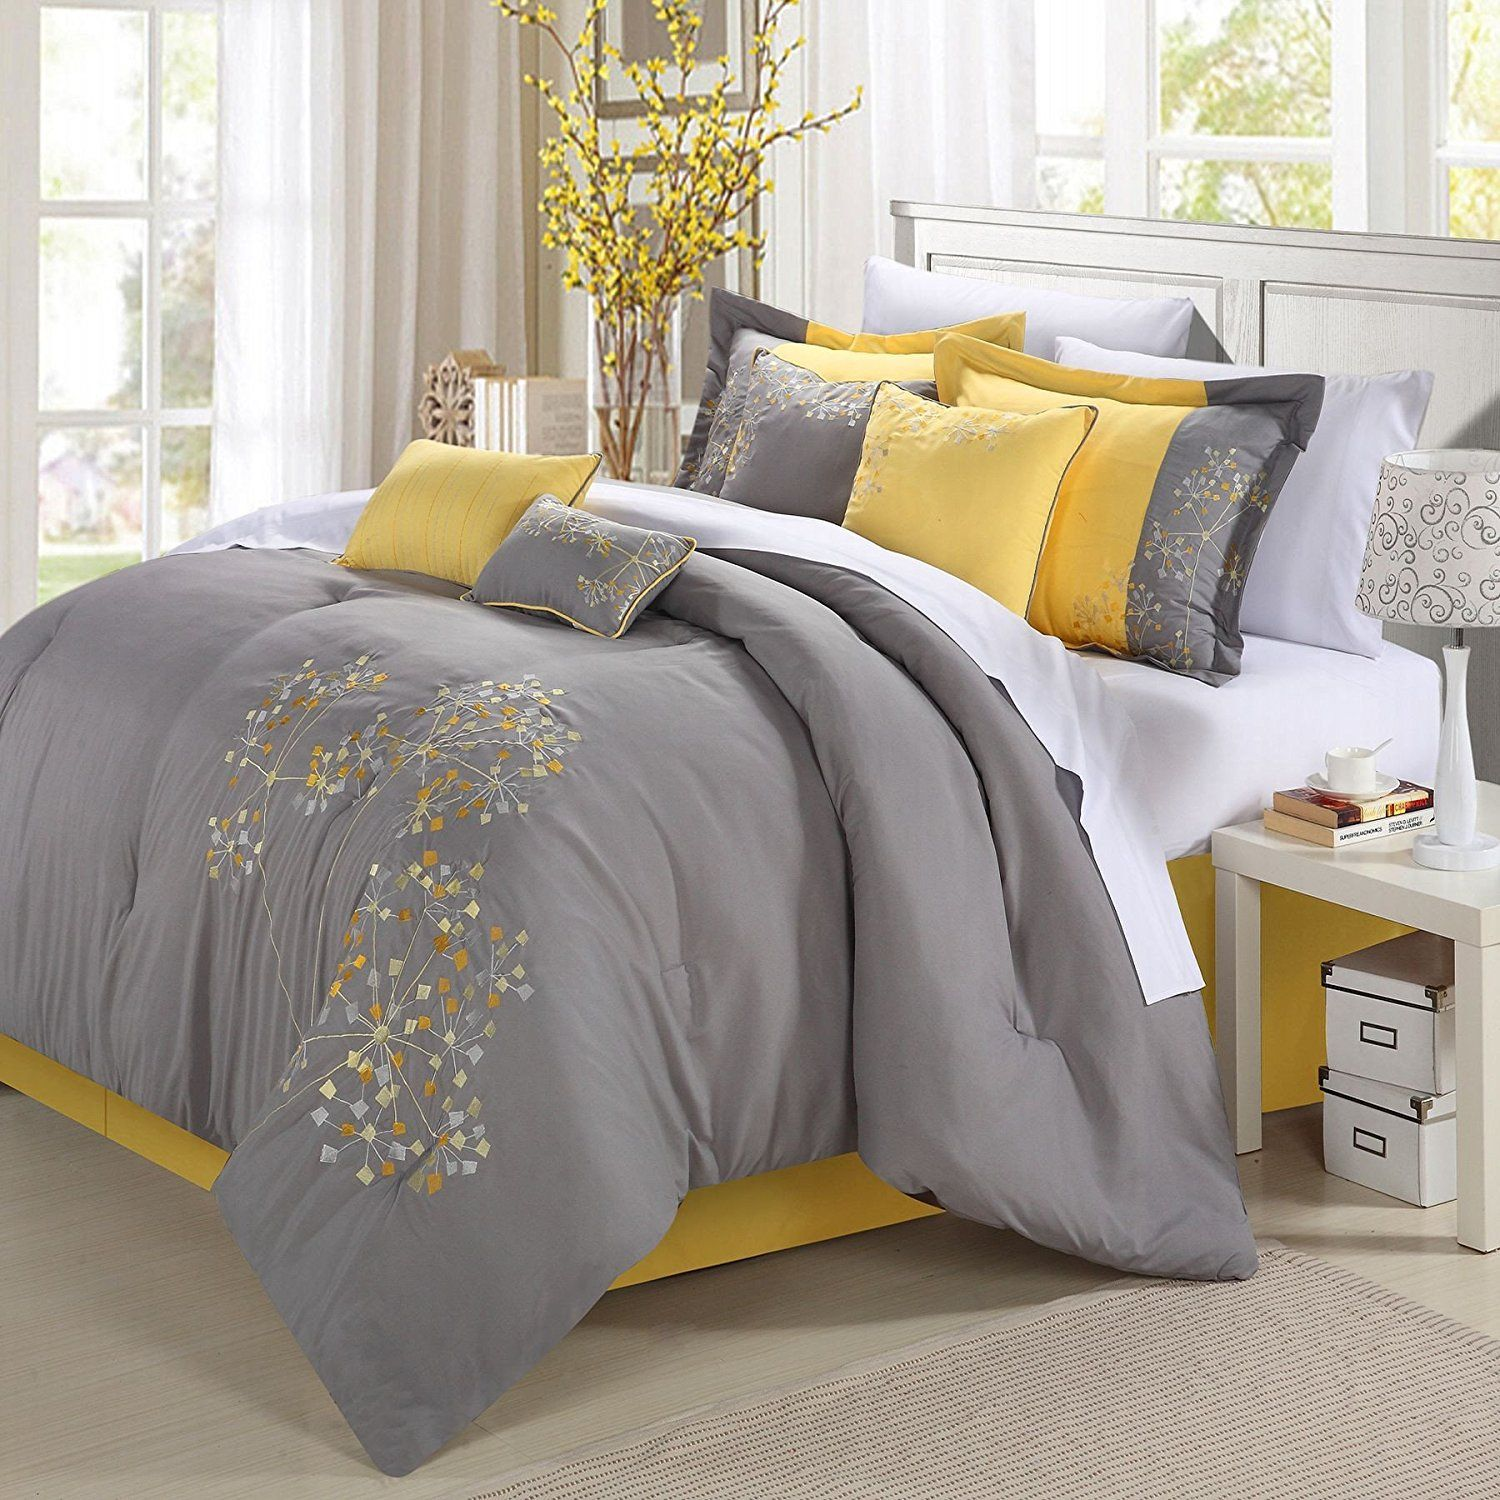 printed comforters free bed white shipping today flower and gray navy yellow sale for grey sets cream target cotton king set decoration park size comforter clearance bedding